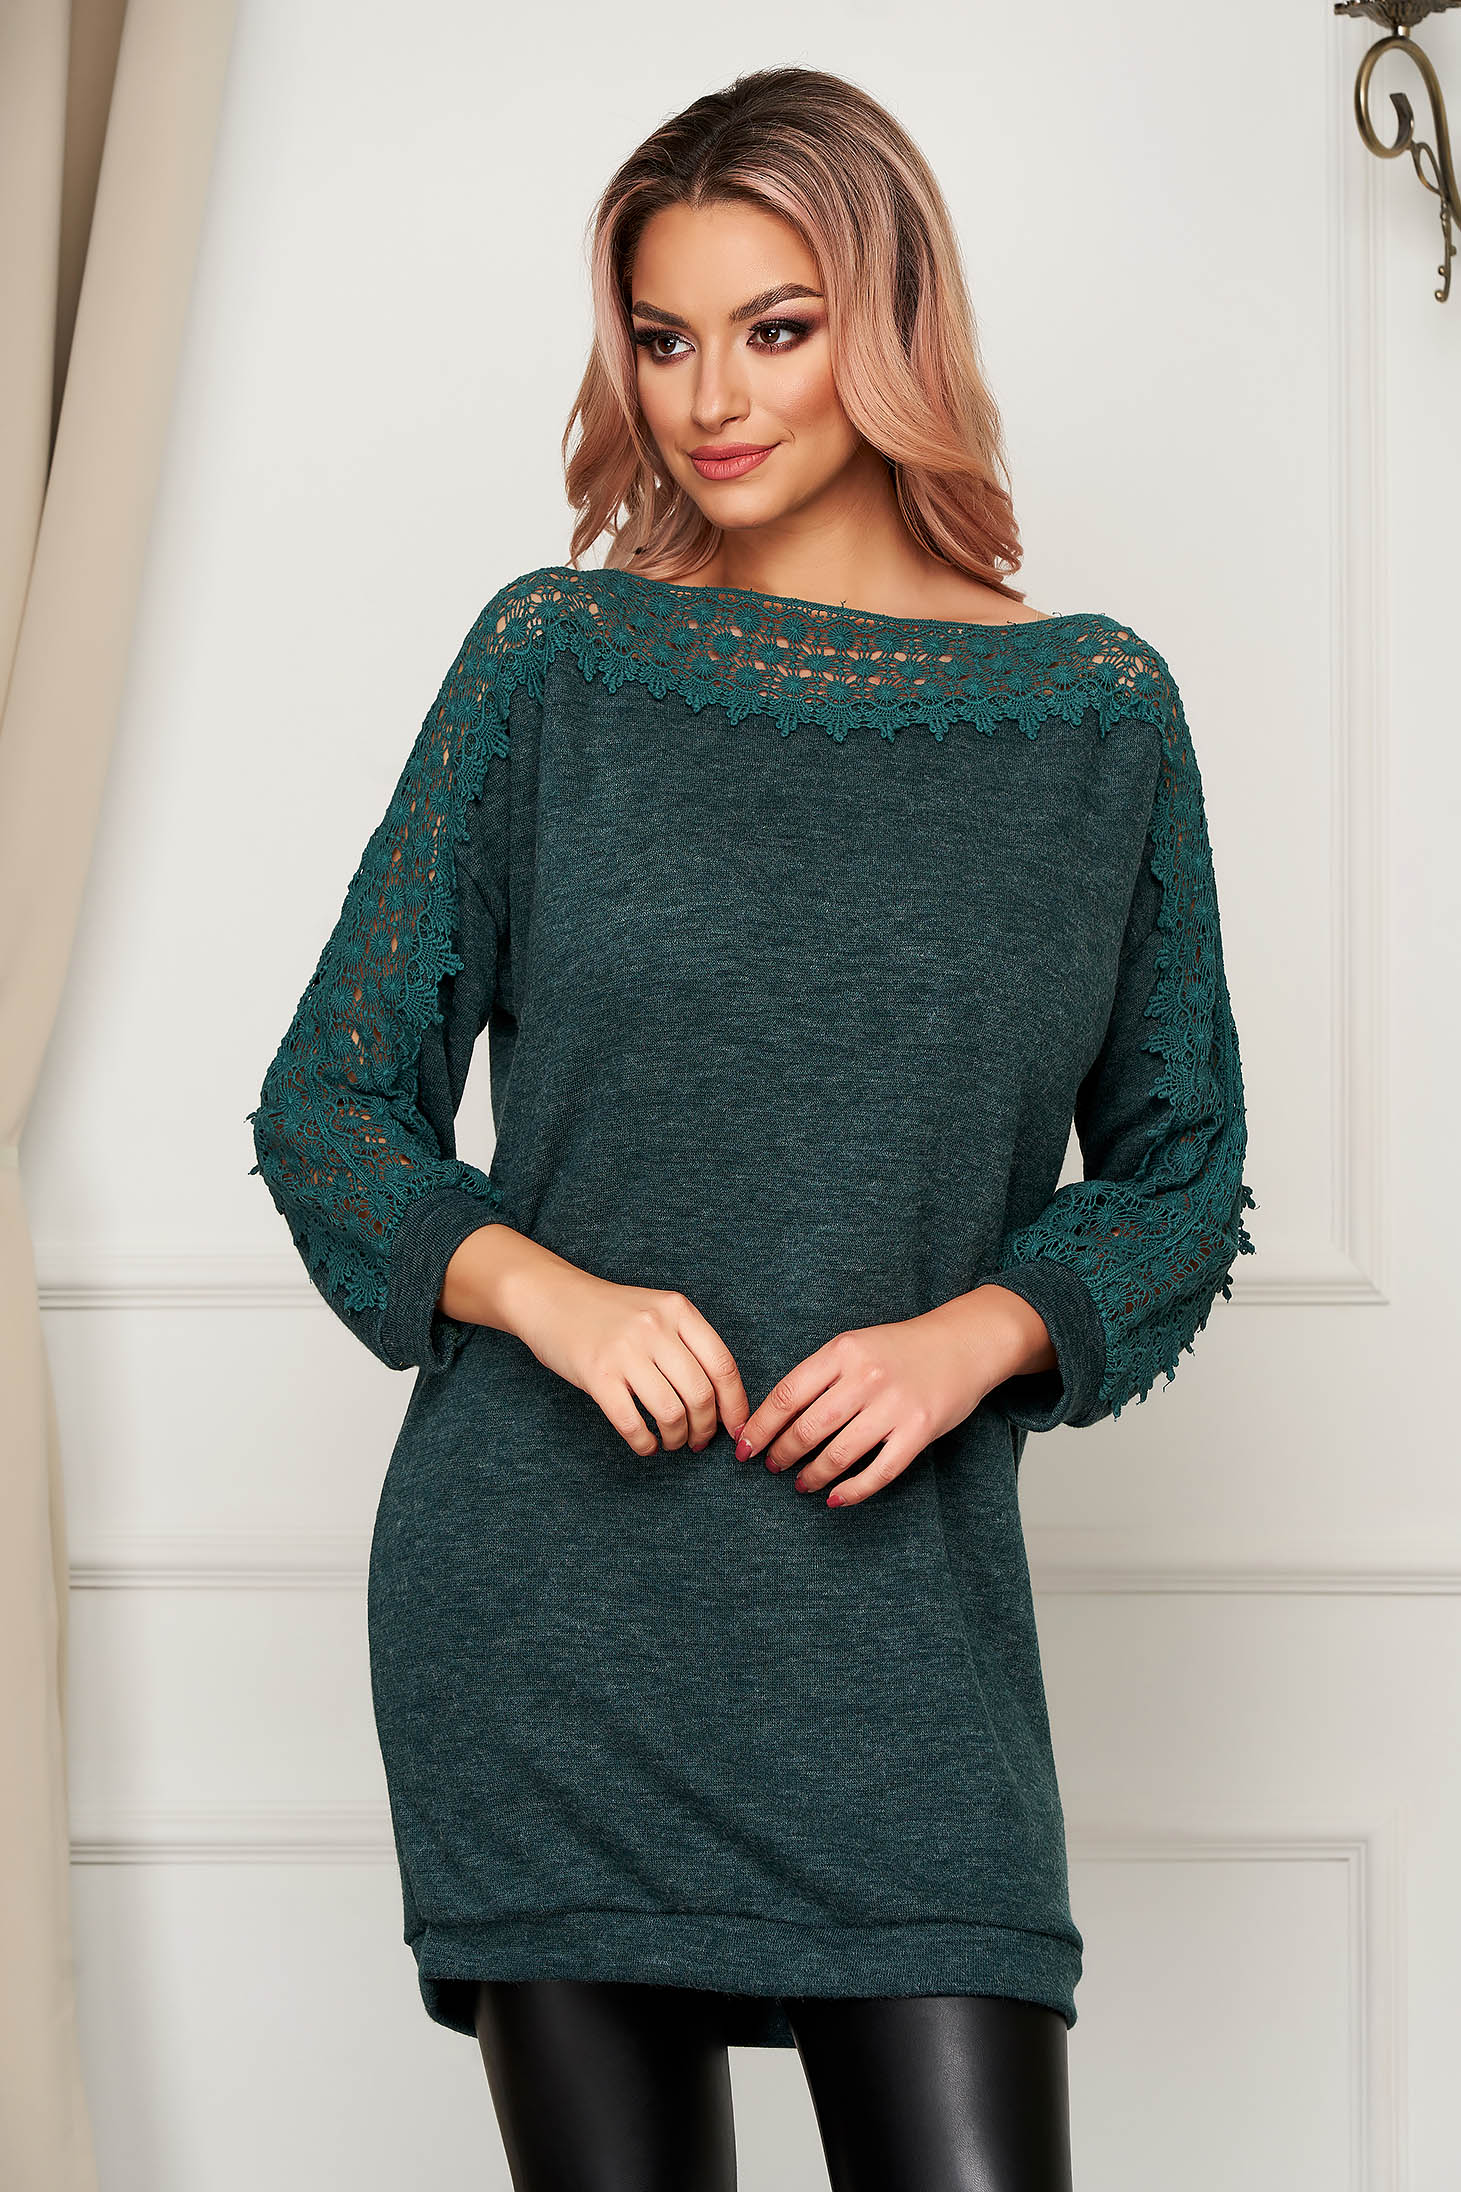 Darkgreen sweater casual long flared knitted fabric with embroidery details